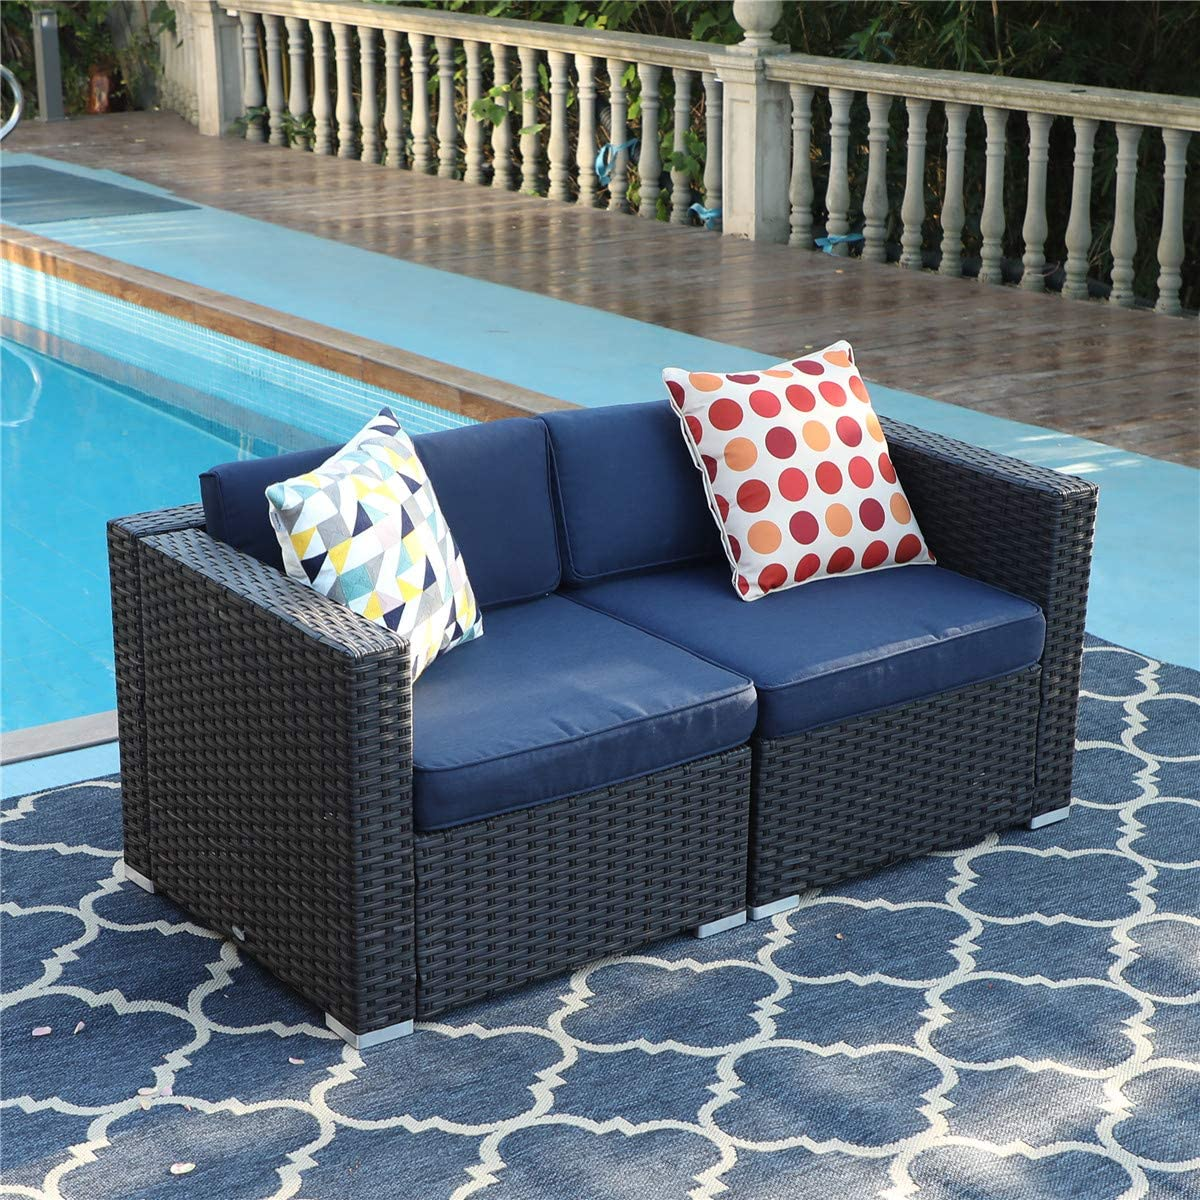 PHI VILLA Patio Furniture Sofa Outdoor Loveseat 2 Piece Patio Couch with Washable Cushions, Outdoor Furniture Sofa Sets Blue